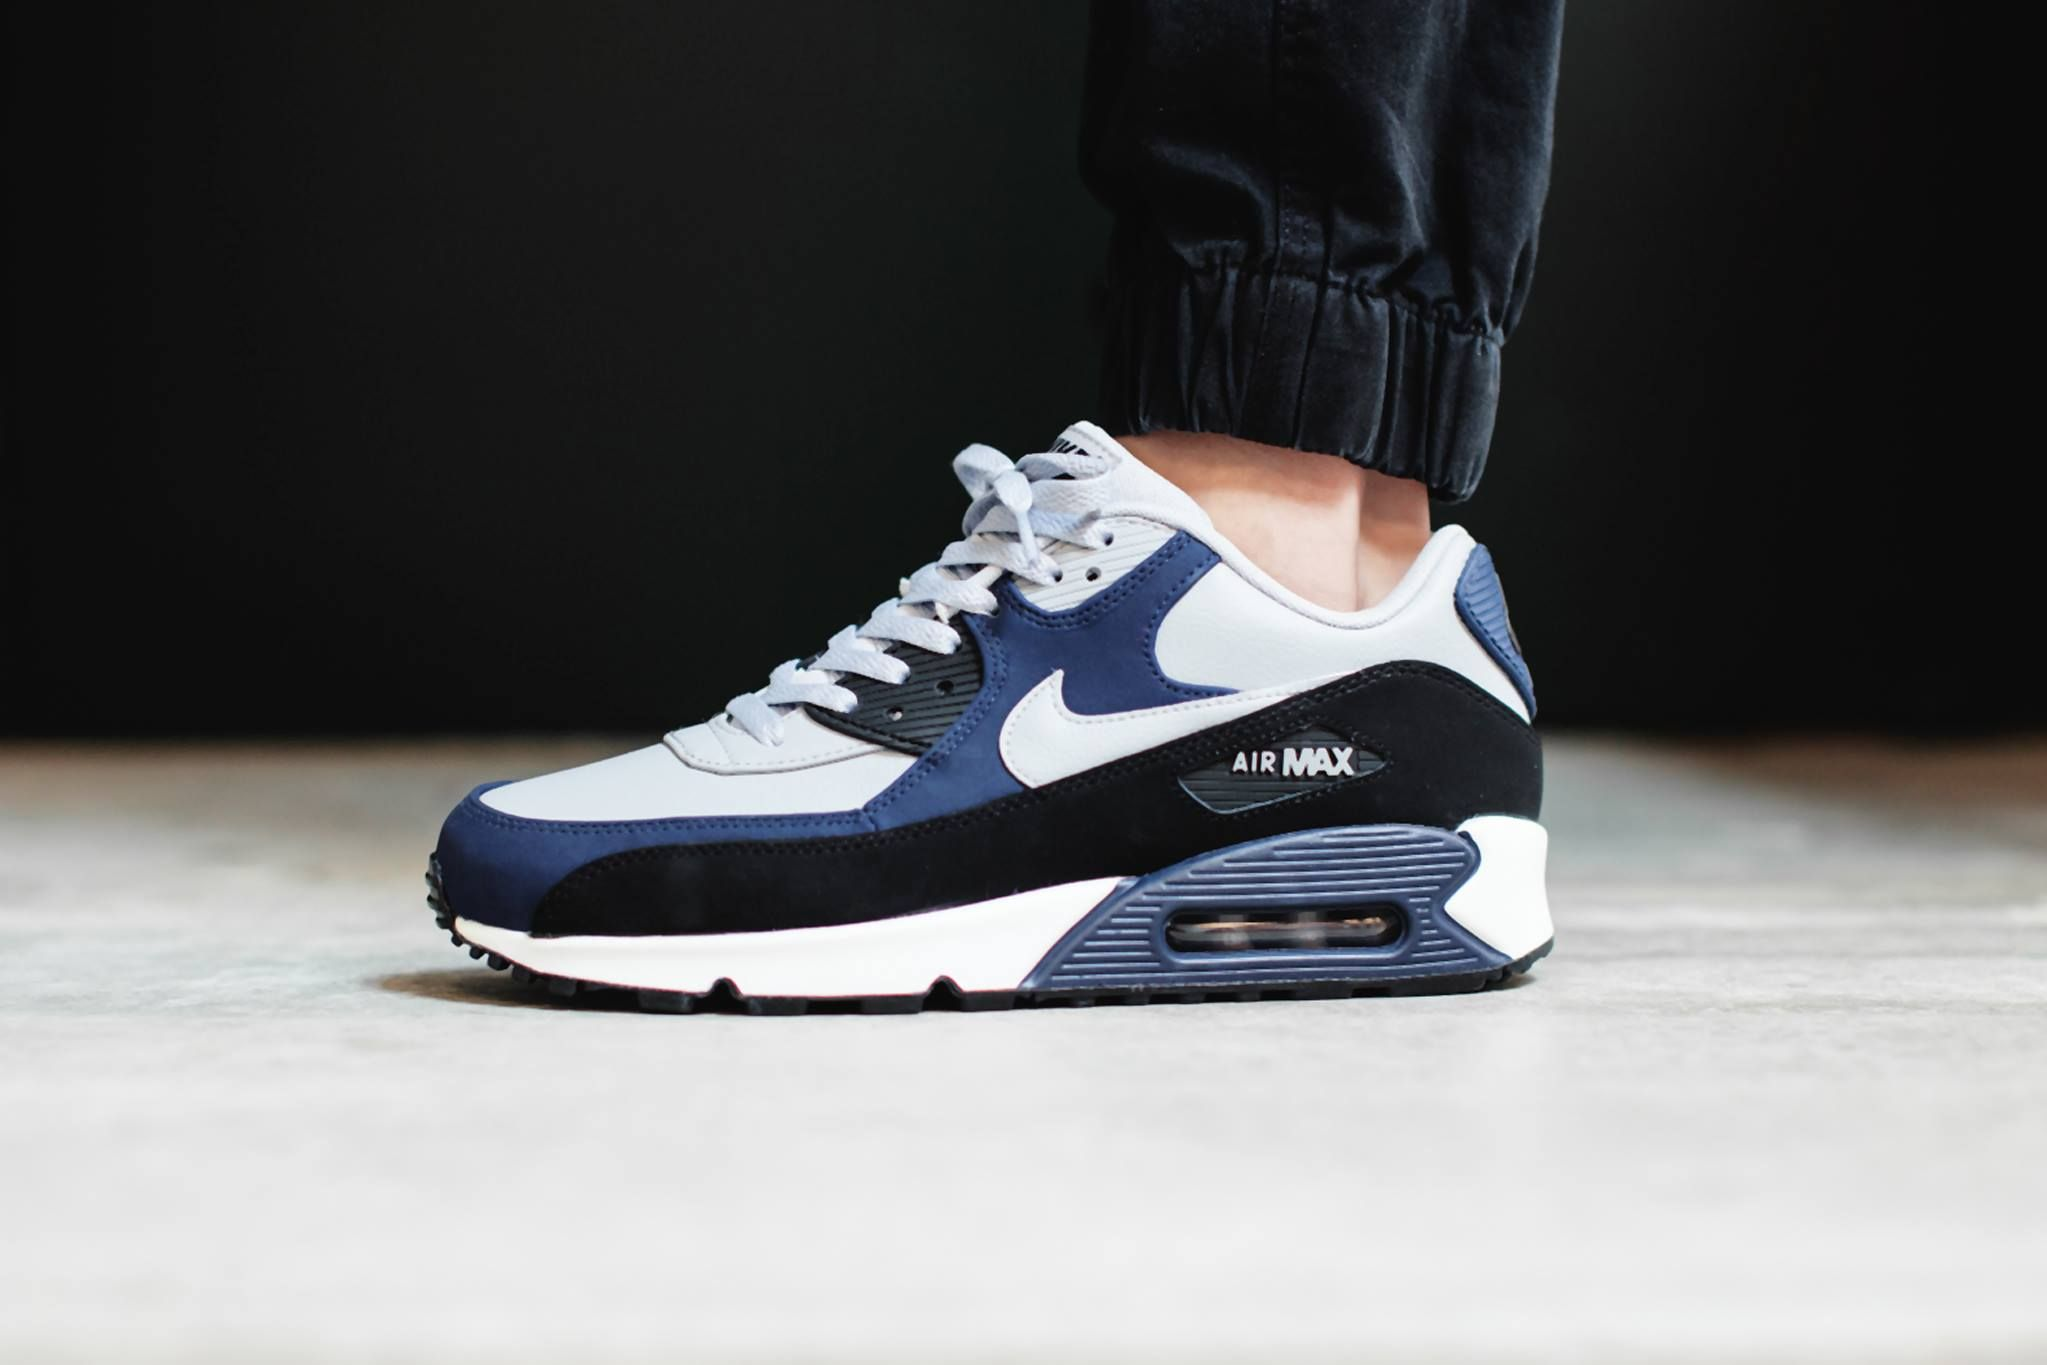 nike air max 90 photo deep blue royal yeezy clothing